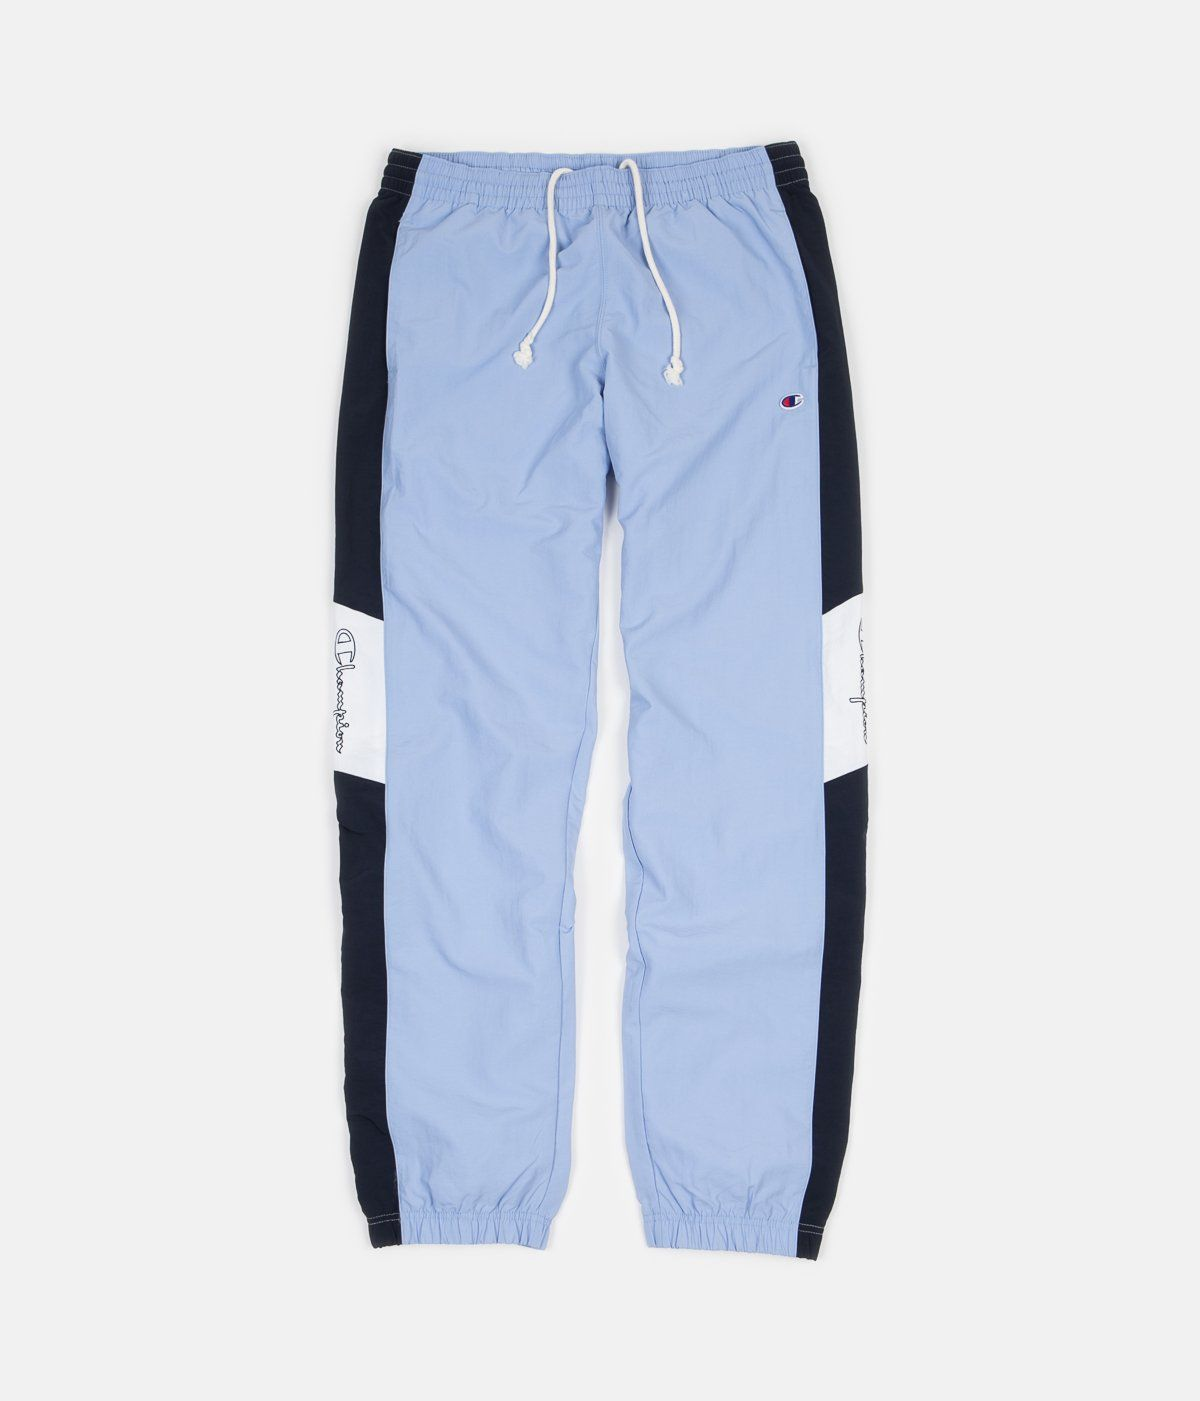 3ee483643d1a Champion Elastic Cuff Tracksuit Sweatpants - Light Blue   Navy   White